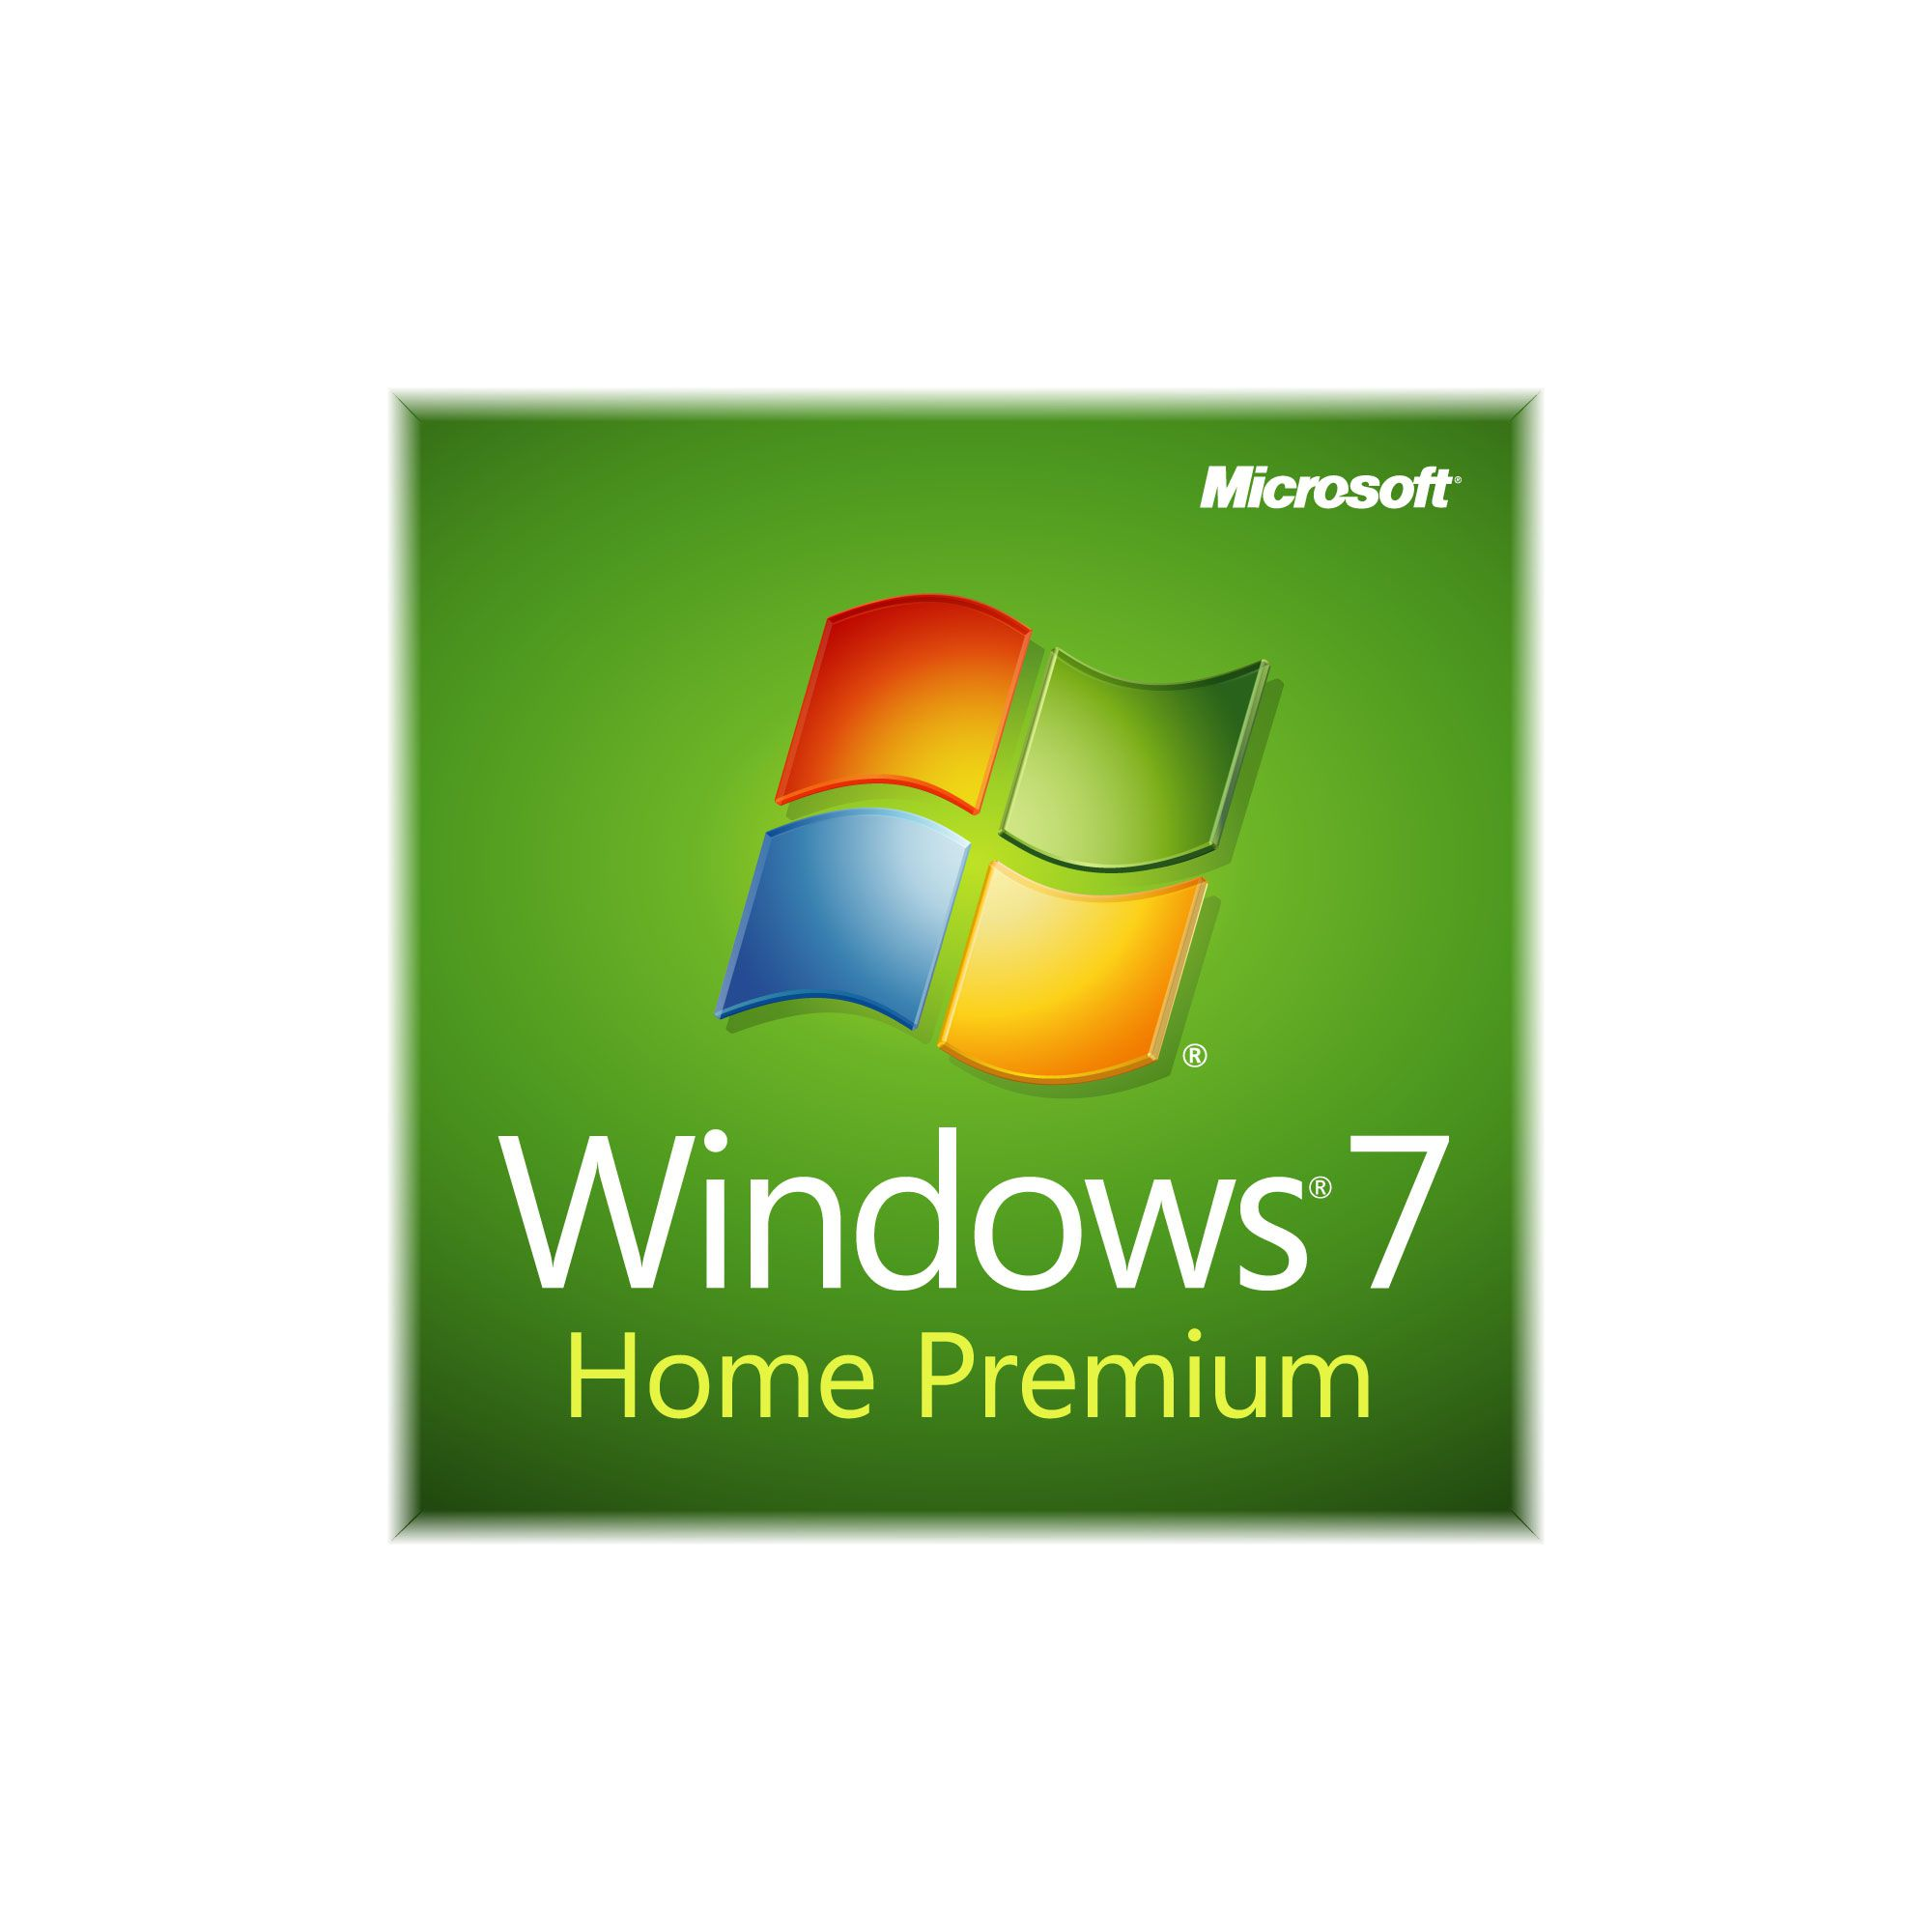 Offerta: Microsoft Windows 7 Home Premium with Service Pack 1, 64-bit, English